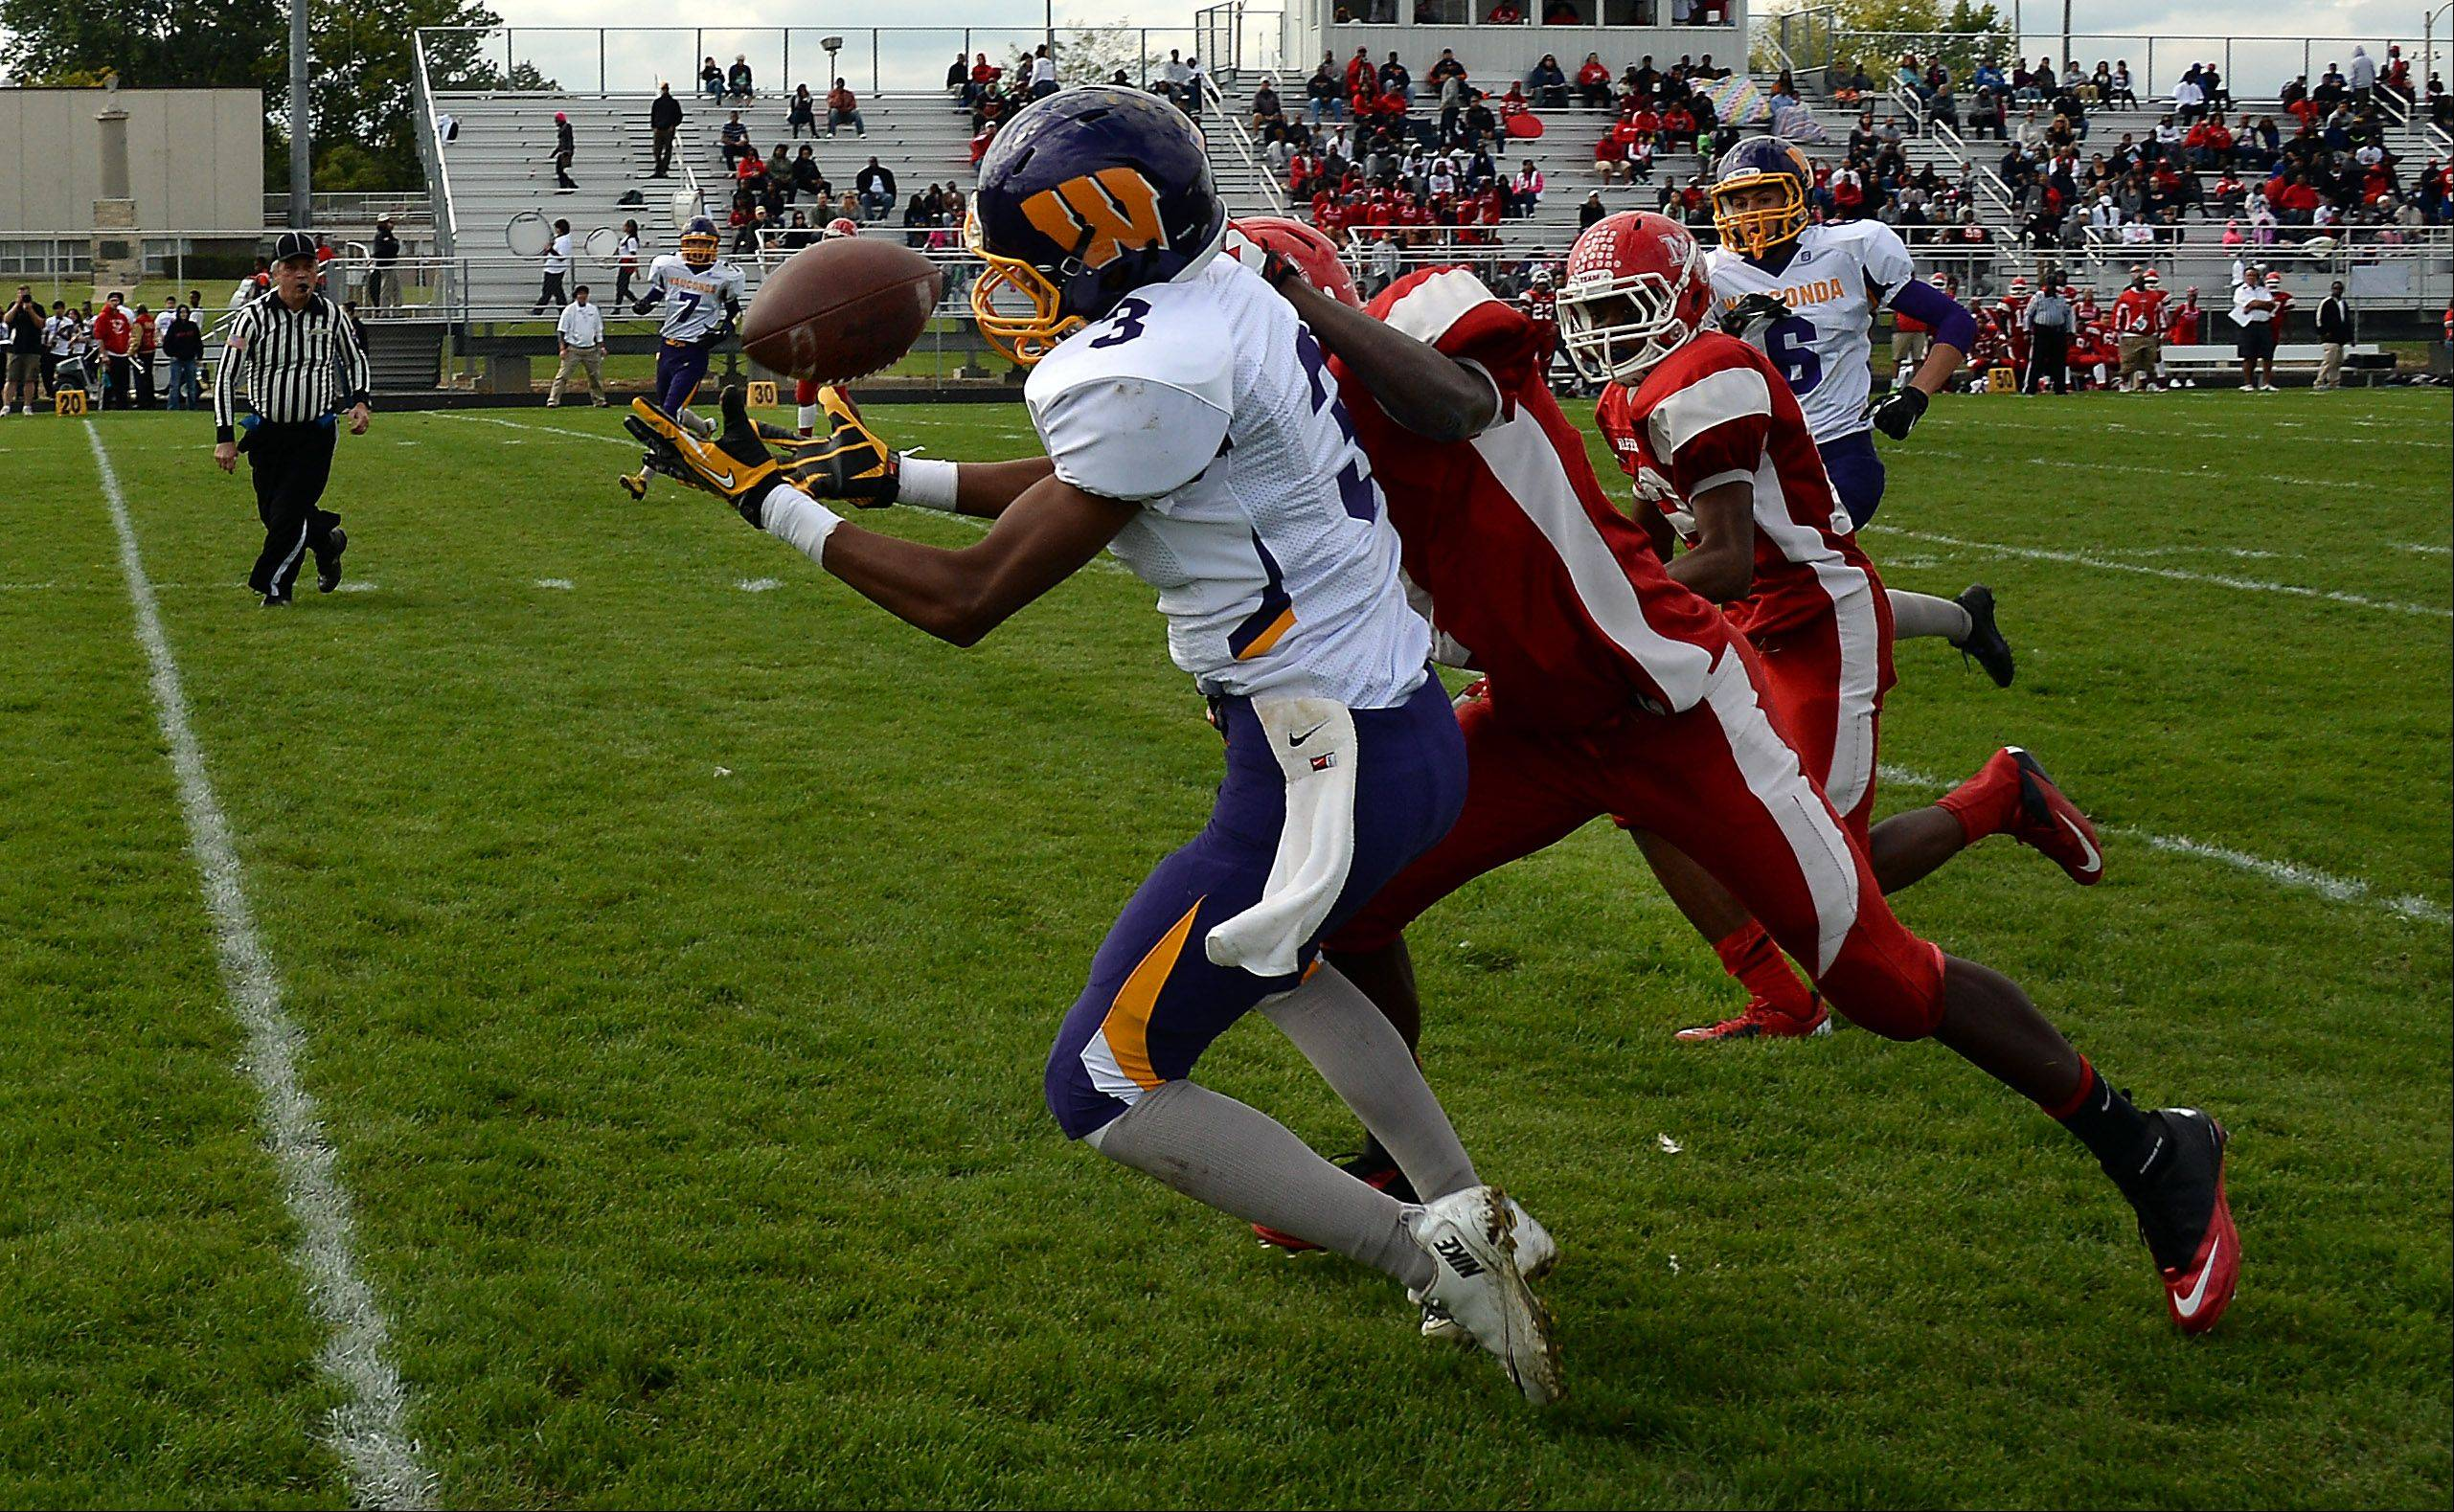 Wauconda's Josh Anderson hauls in a pass play despite pressure from North Chicago's Brandon Coofer in the second quarter for major yardage at North Chicago High School on Saturday.